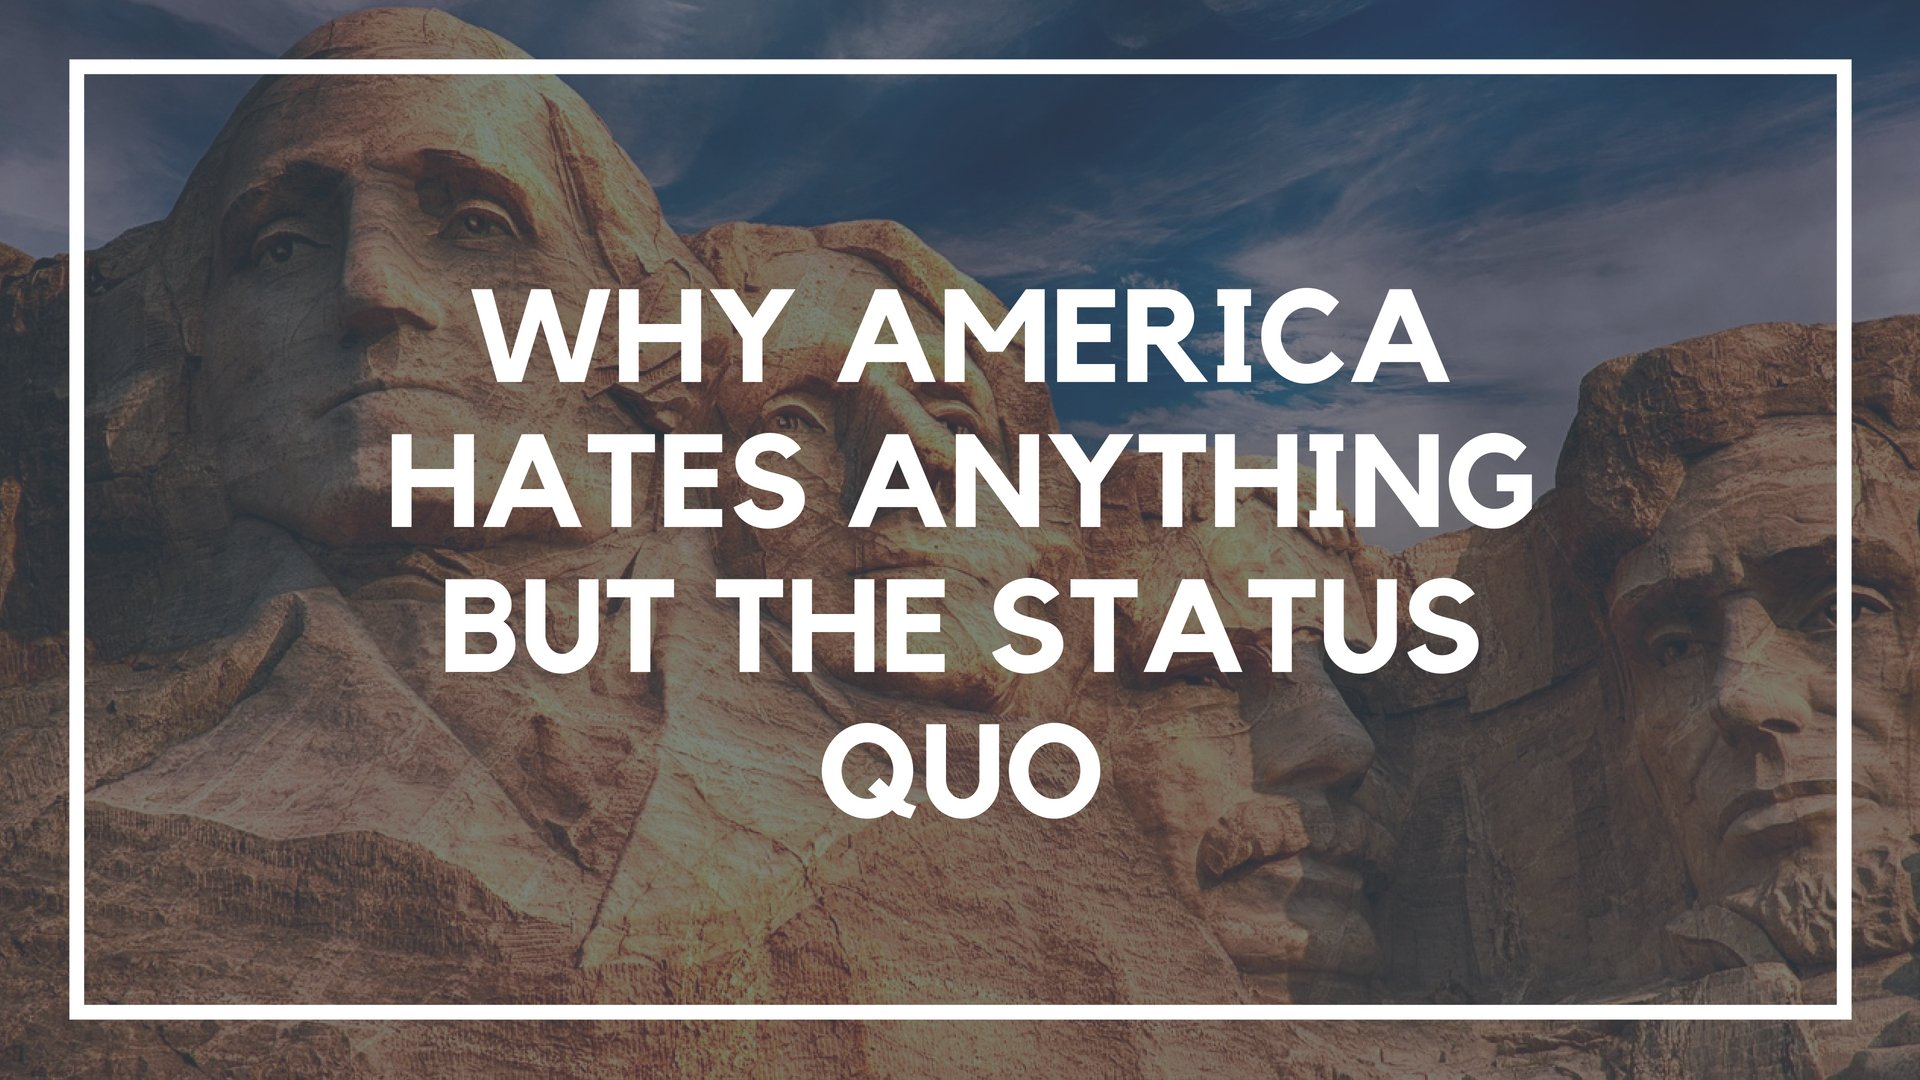 Why America Hates Anything But the Status Quo